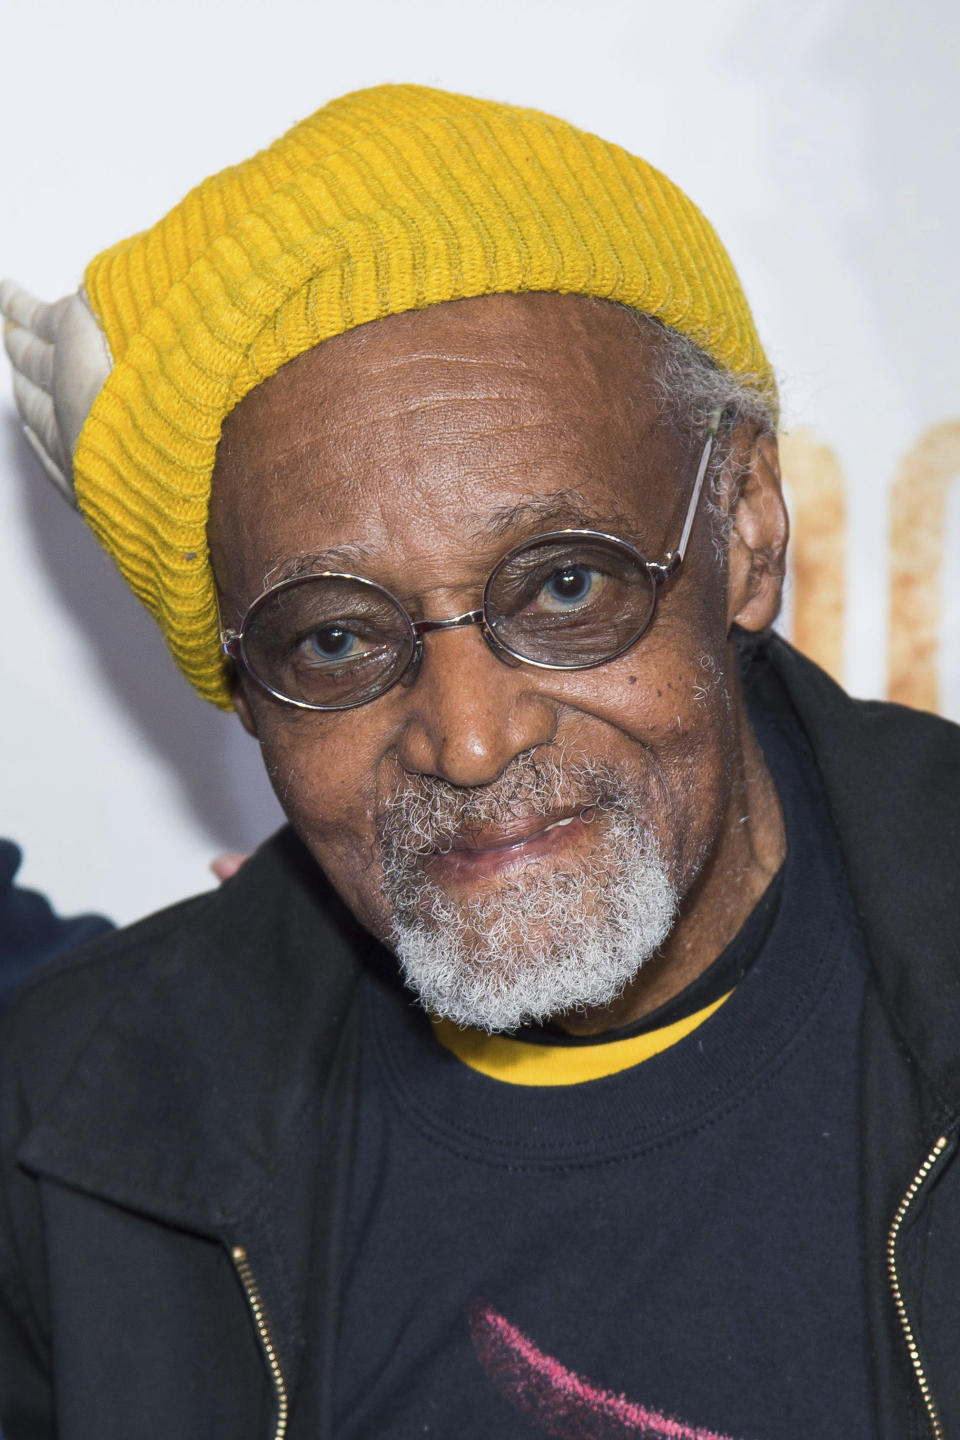 """FILE - Melvin Van Peebles attends History Channel's """"Roots"""" mini-series premiere at Alice Tully Hall on Monday, May 23, 2016, in New York. Van Peebles, a Broadway playwright, musician and movie director whose work ushered in the """"blaxploitation"""" films of the 1970s, has died at age 89. His family said in a statement that Van Peebles died Tuesday night, Sept. 21, 2021, at his home. (Photo by Charles Sykes/Invision/AP, File)"""